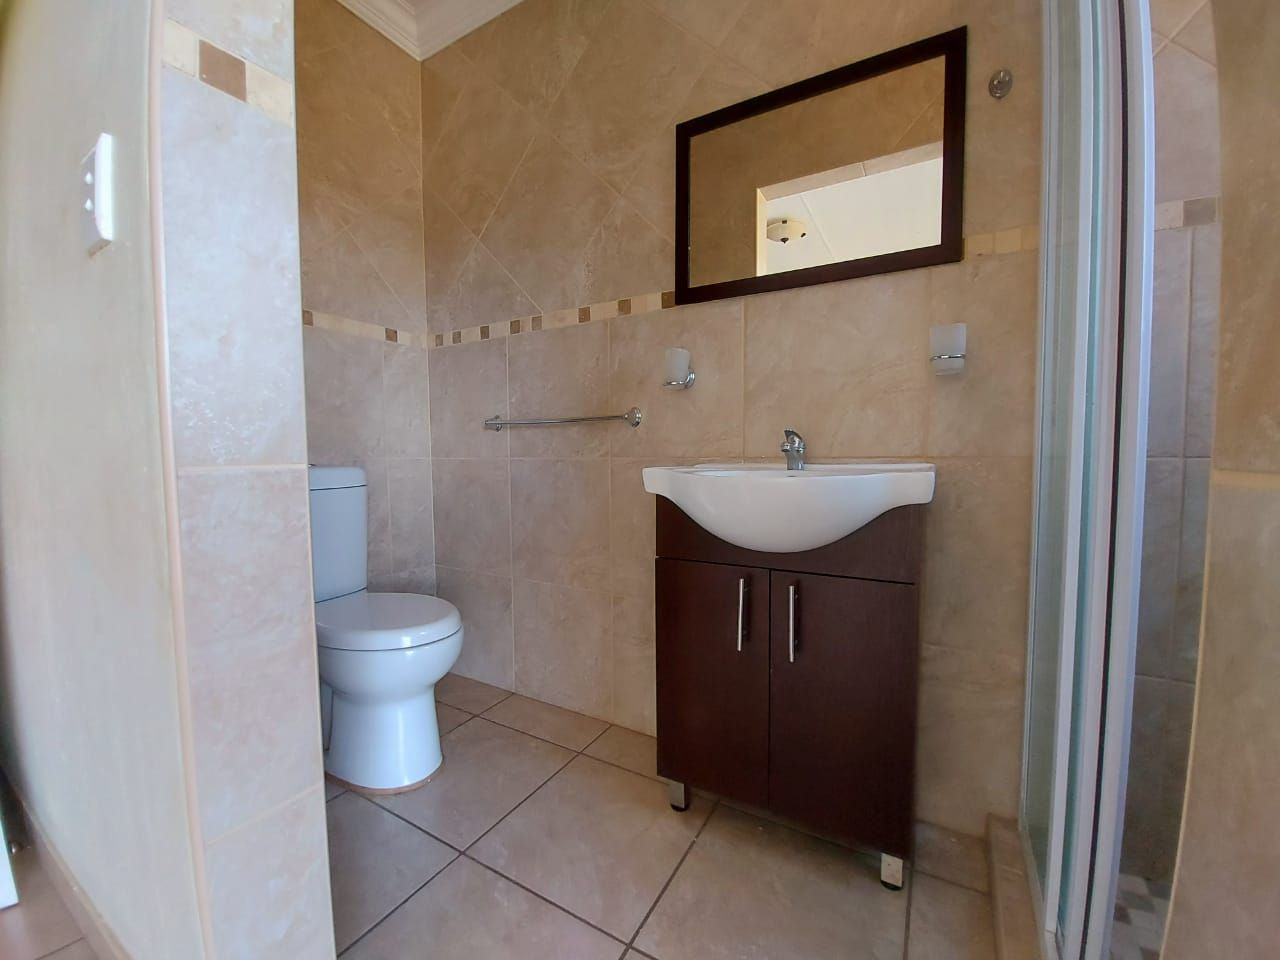 Apartment in Bult - WhatsApp Image 2020-08-17 at 13.25.39 (2).jpeg